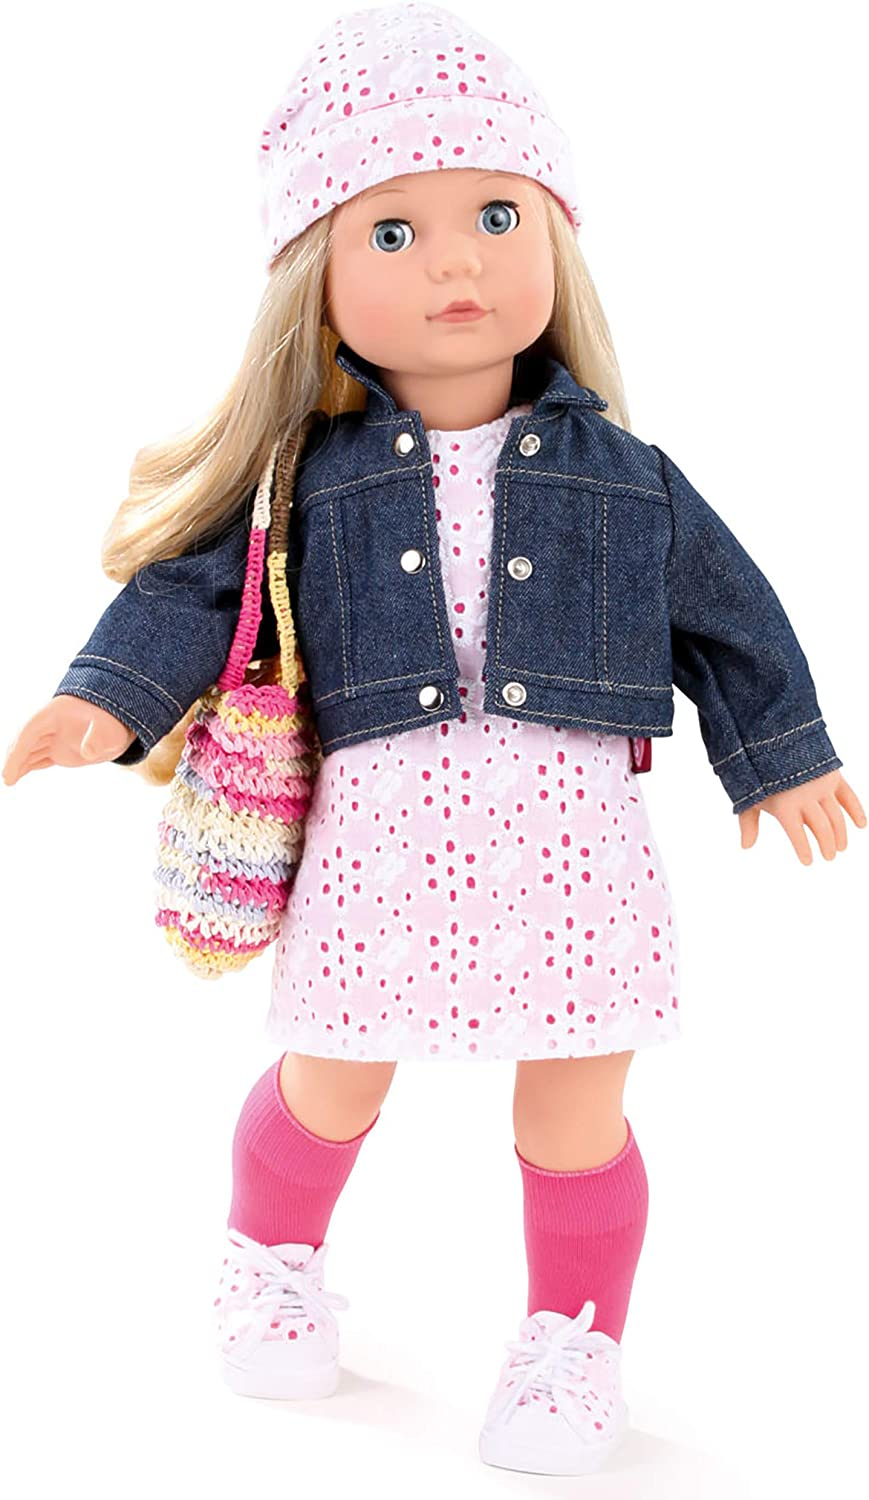 Gotz Precious Day Jessica 18 Soft Body Standing Doll with Long Blonde Hair to Wash /& Style